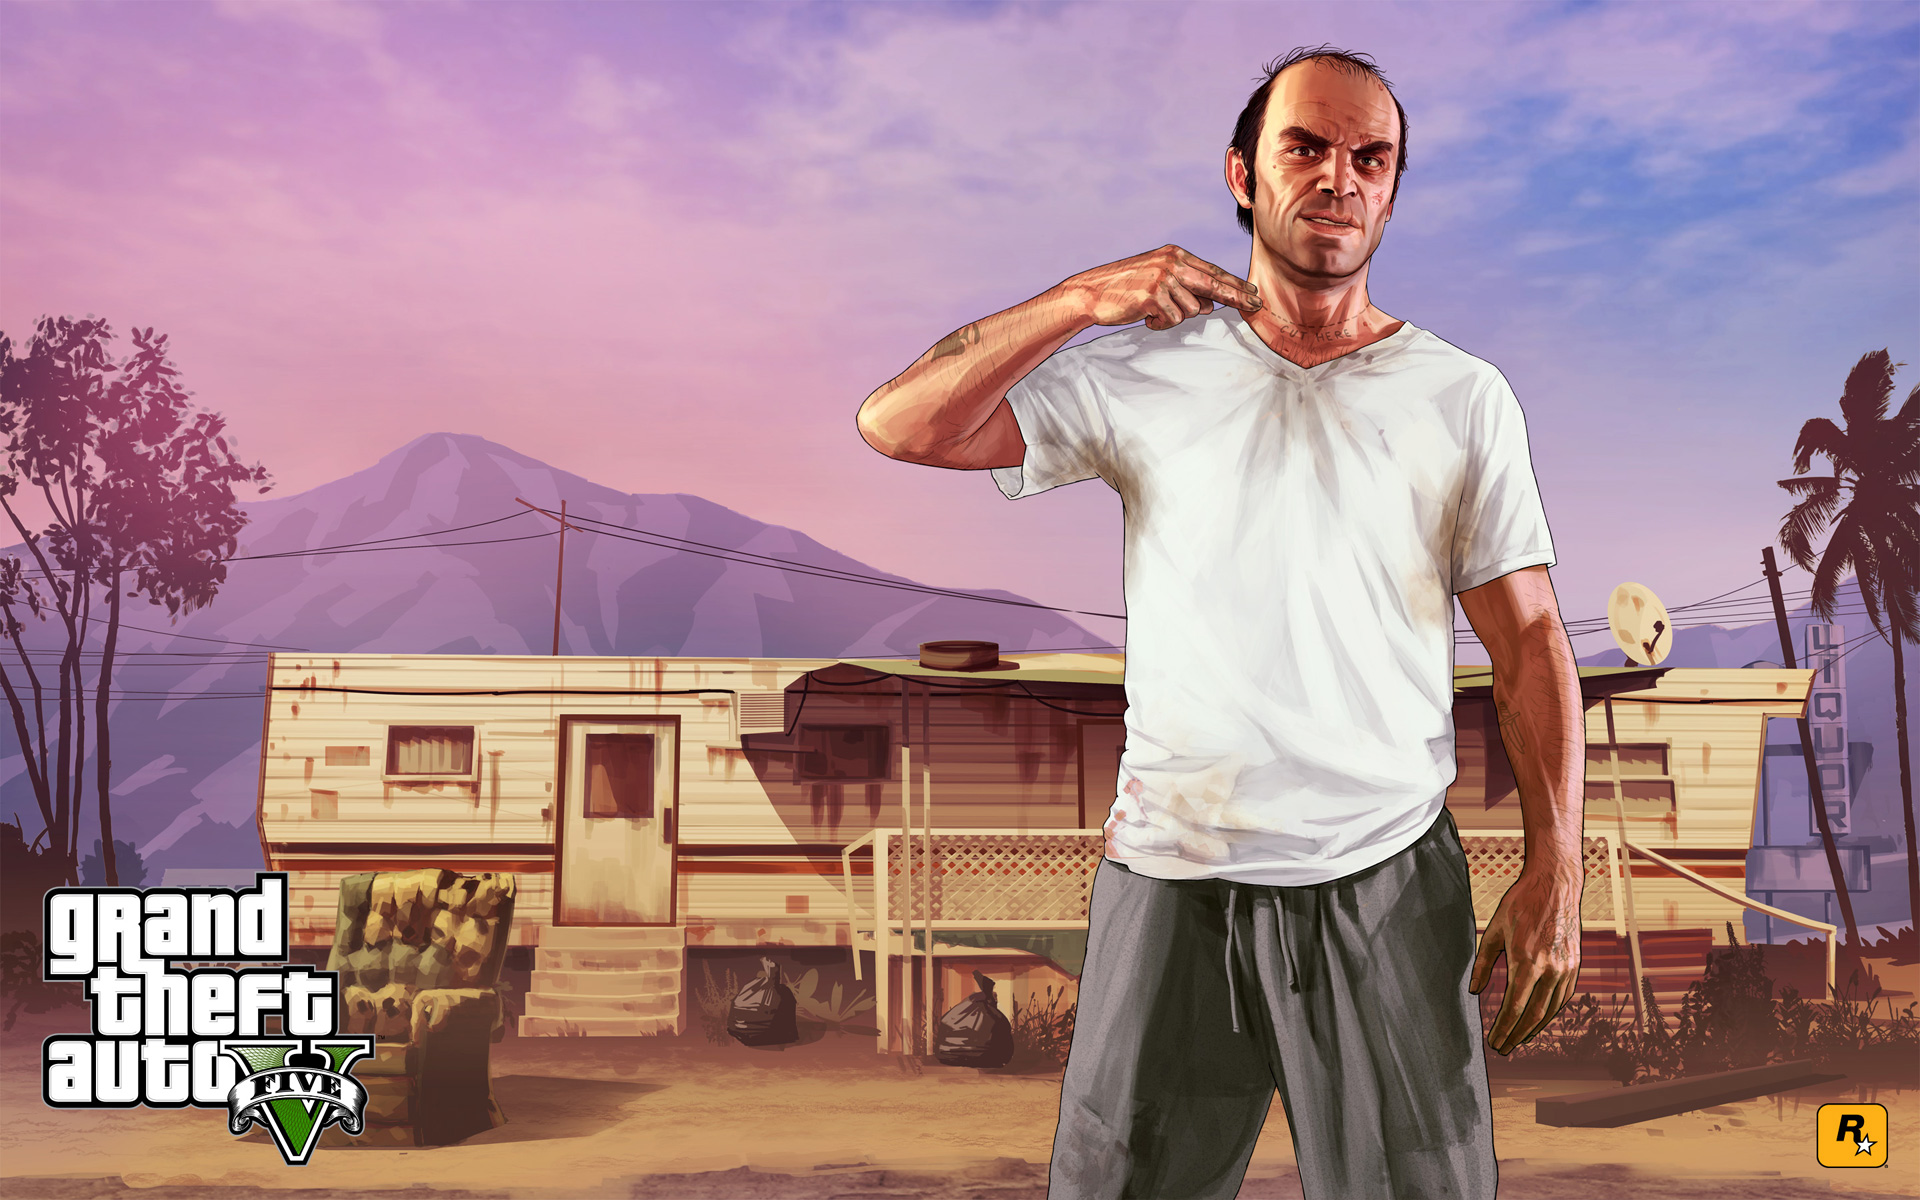 Grand Theft Auto V Wallpaper in 1920x1200